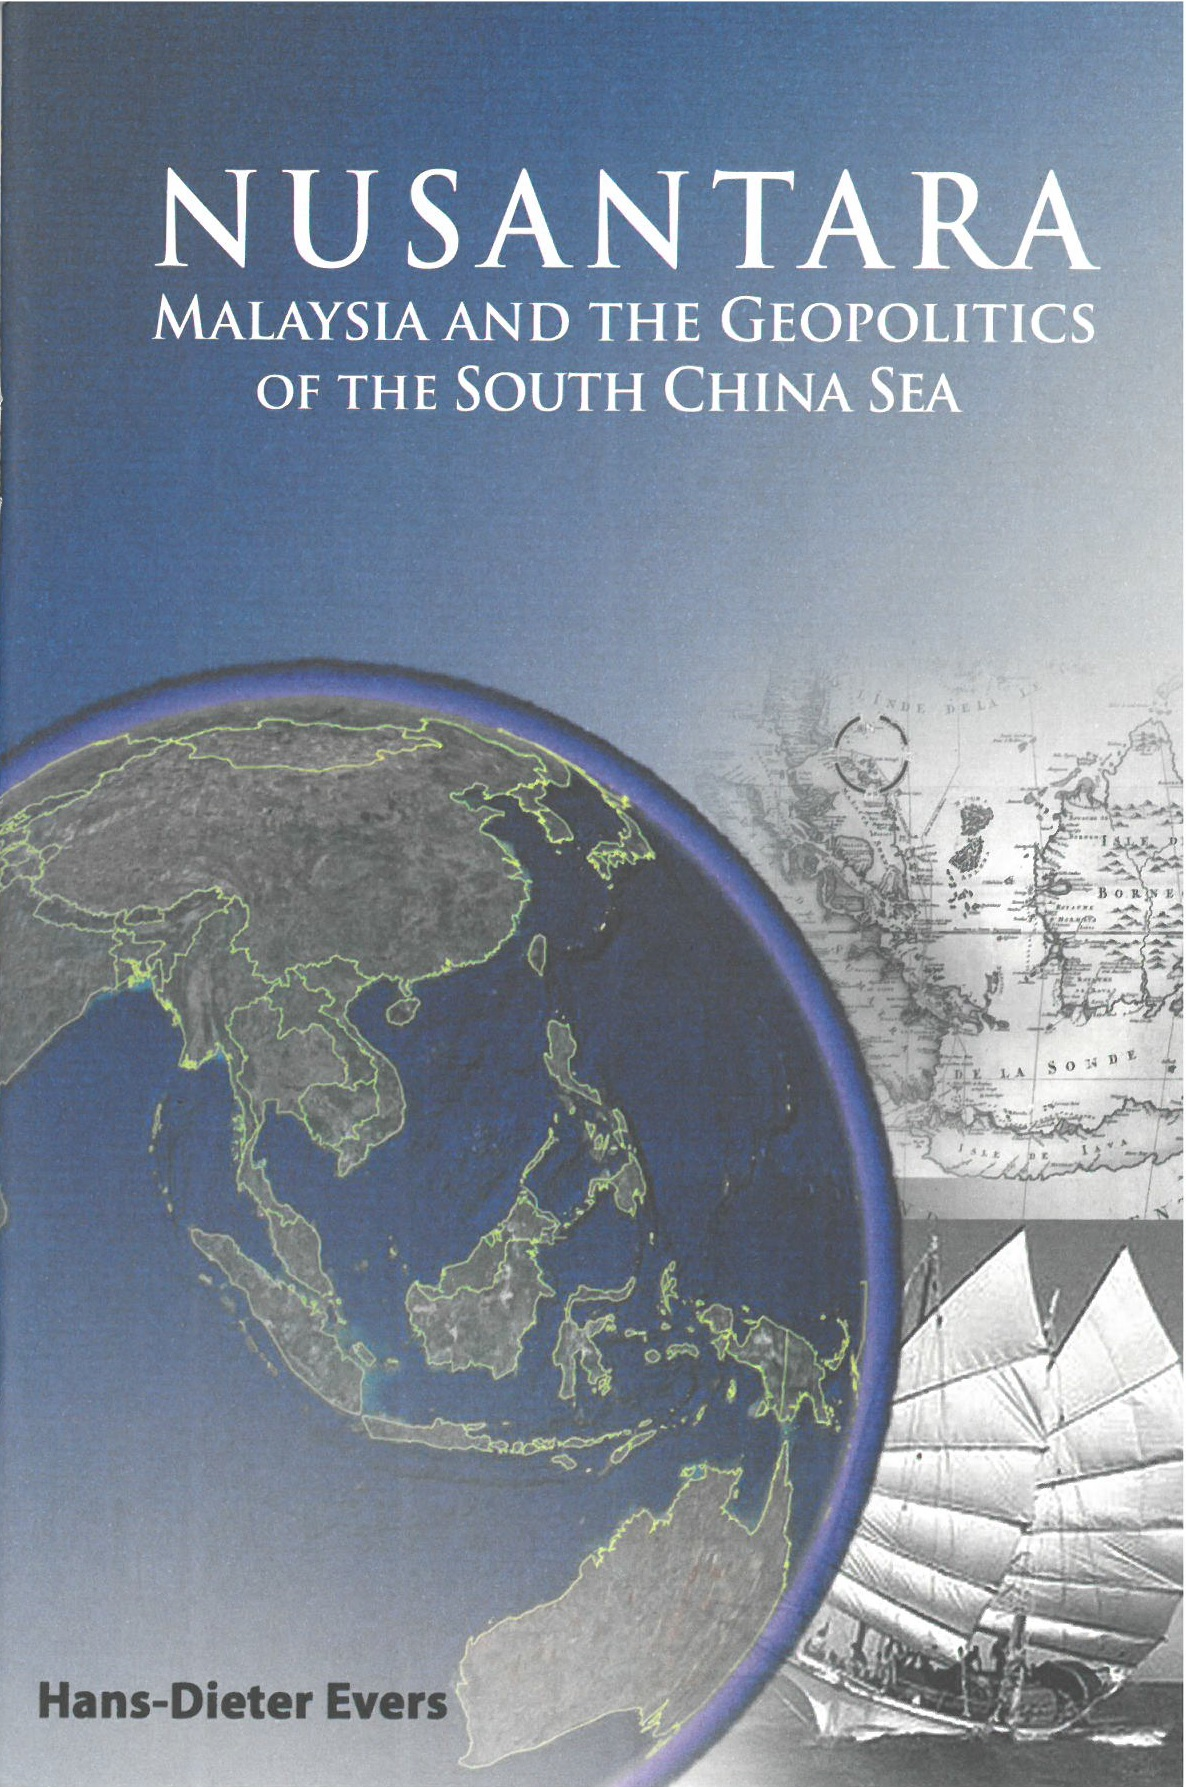 NUSANTARA: MALAYSIA AND THE GEOPOLITICS OF THE SOUTH CHINA SEA